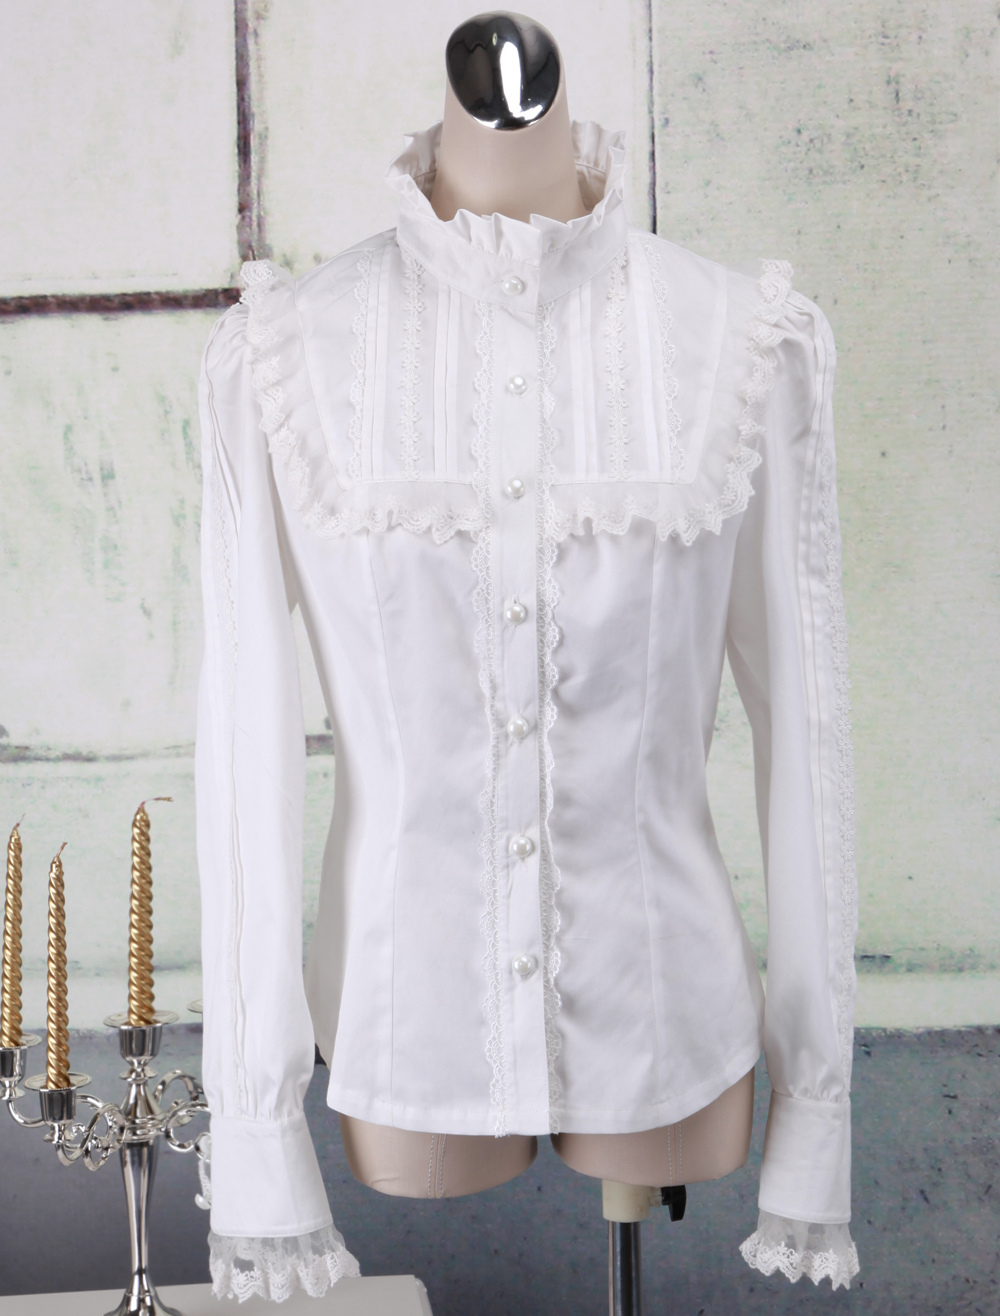 2a94e325413 Lolitashow White Cotton Lolita Blouse Long Sleeves Lace Trim Stand Collar -  Lolitashow.com